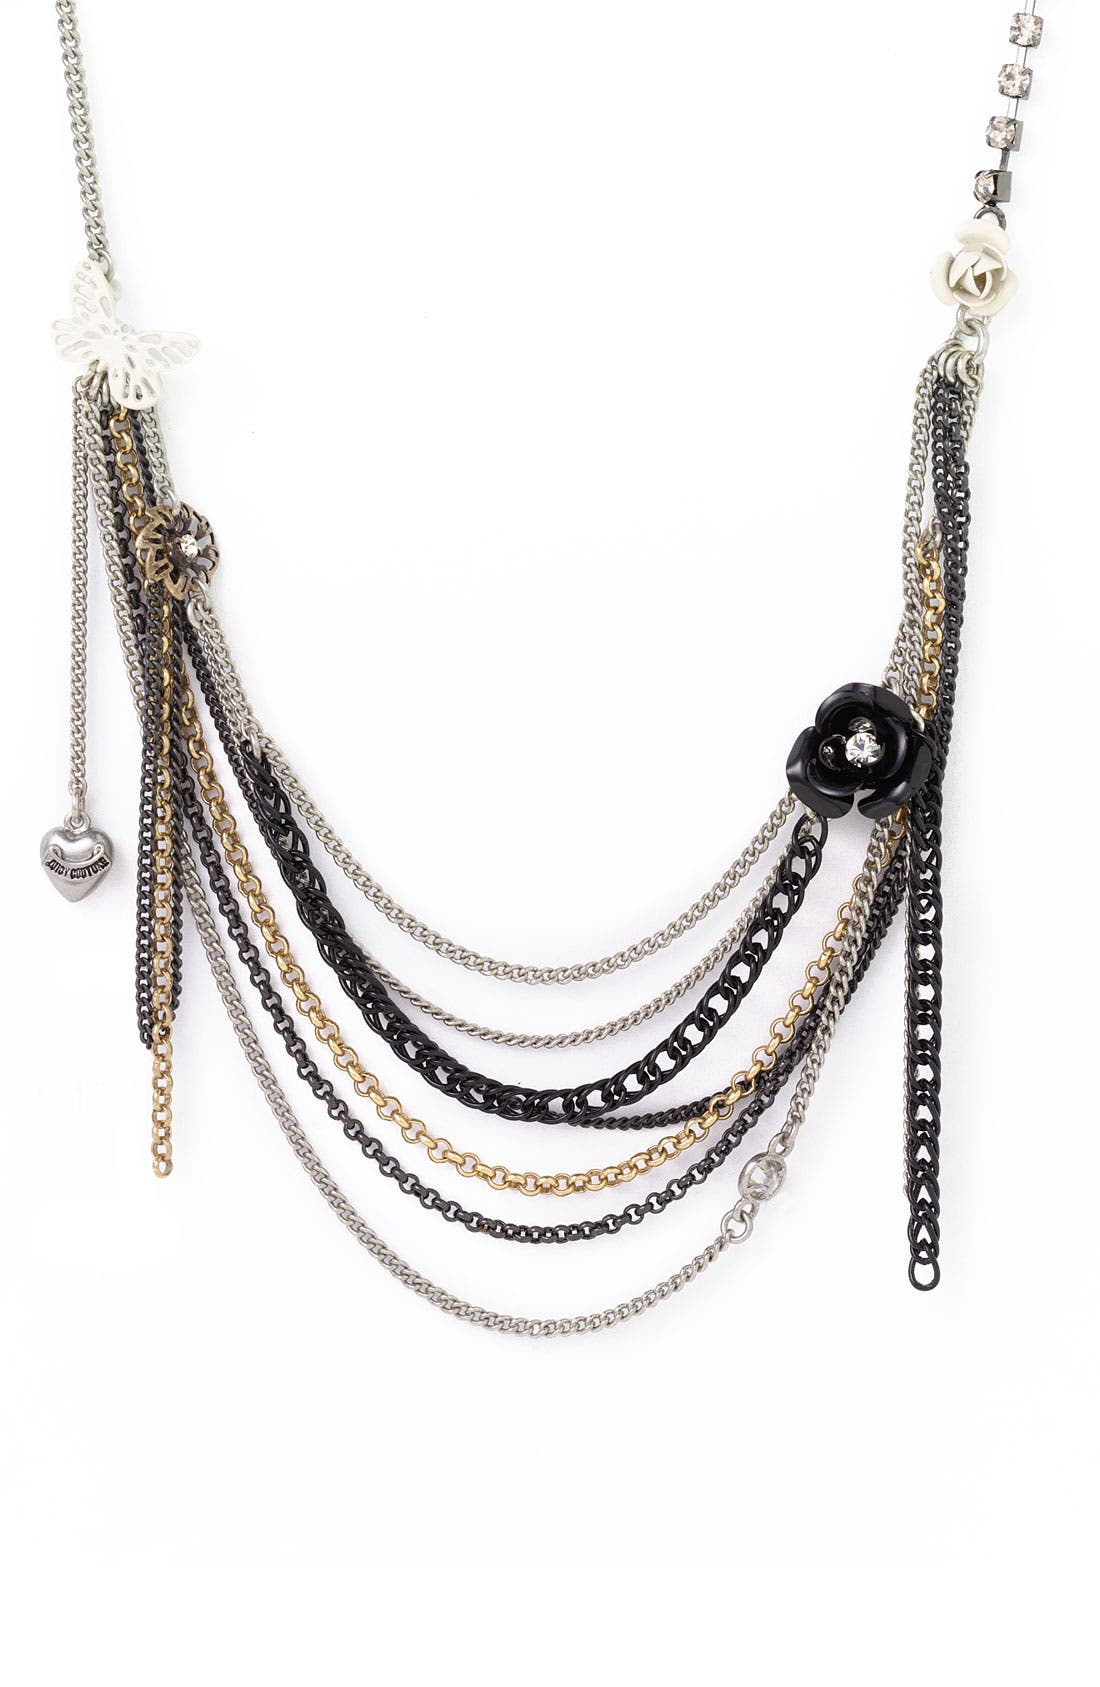 Main Image - Juicy Couture 'After Hours - Butterfly Swag' Multi Chain Necklace